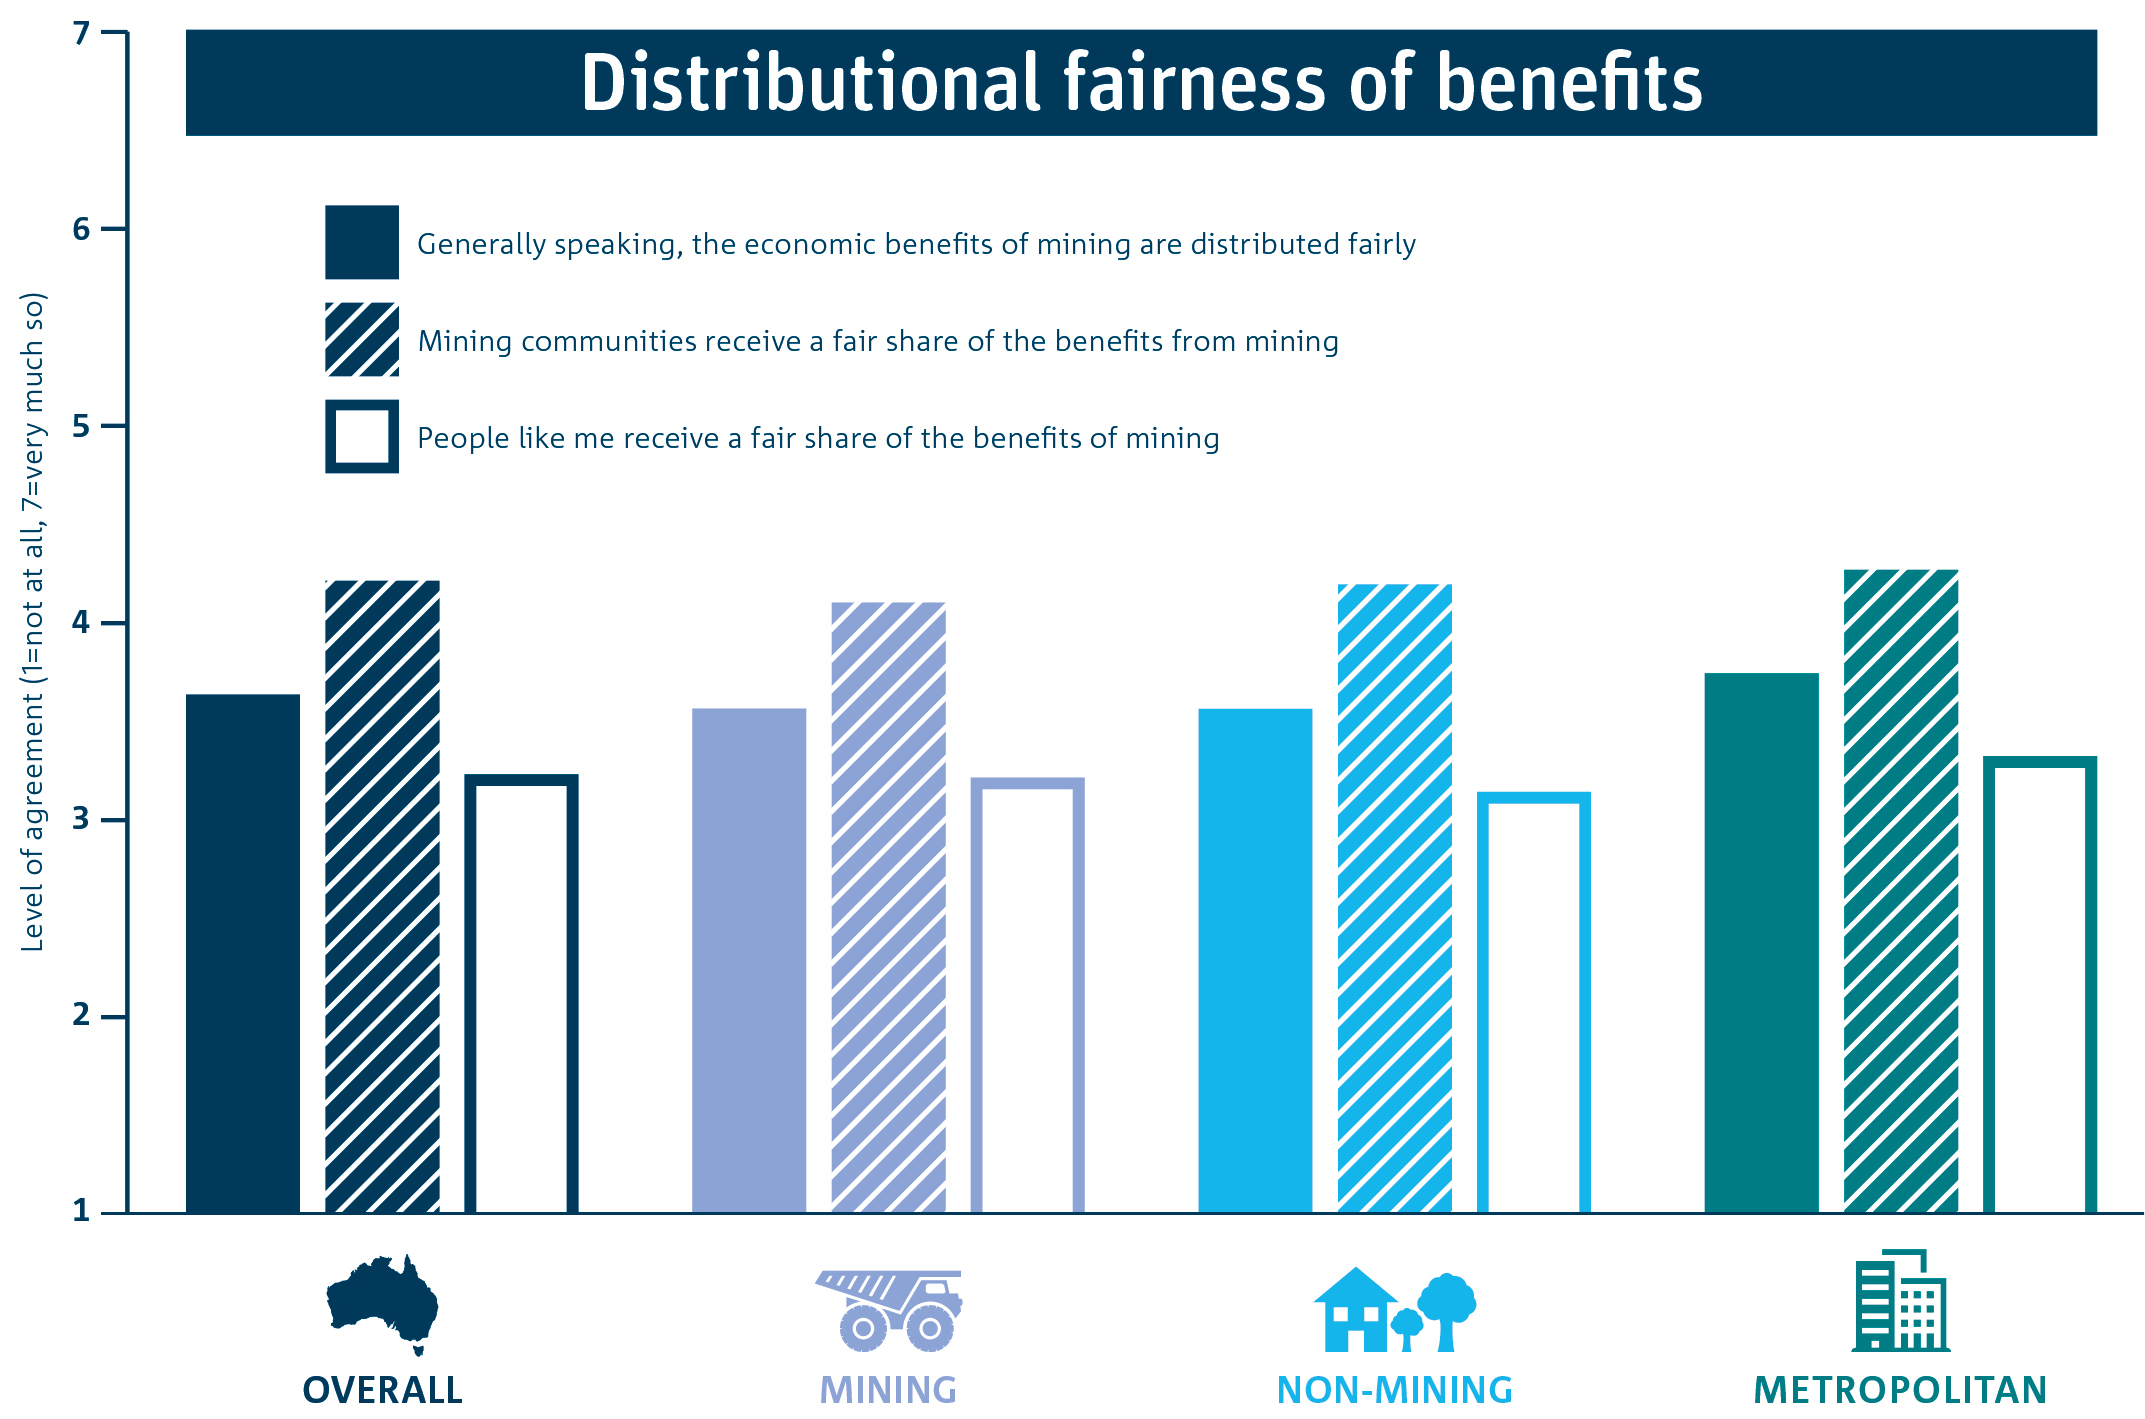 Bar graph of the mean levels of perceived distributional fairness of benefits from mining overall, and by region.